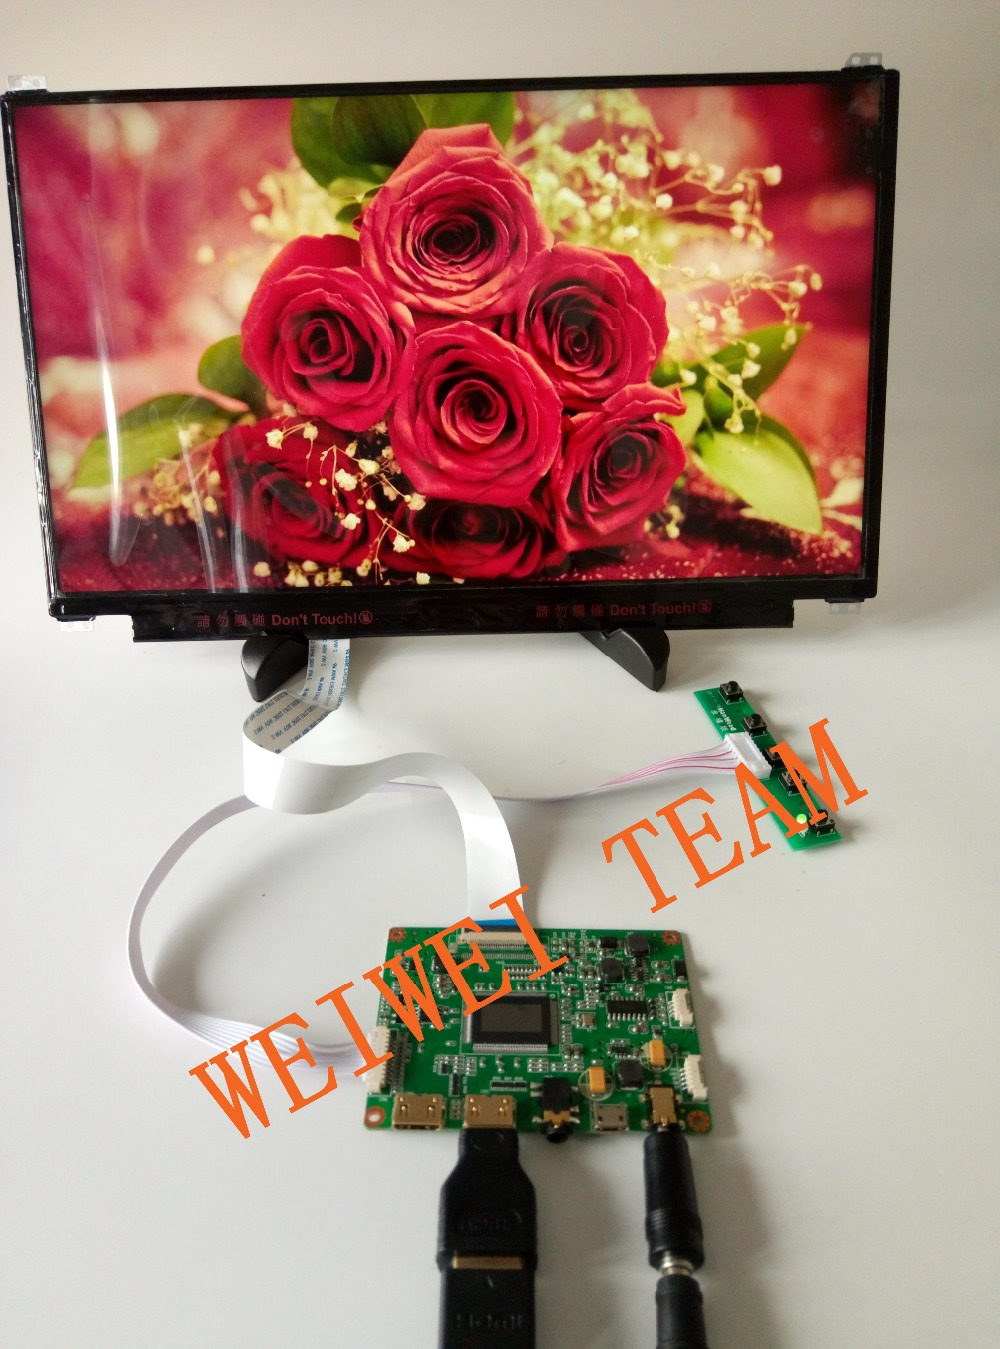 13.3 inch 1920x1080 IPS 1080P LCD Display Screen Module HDMI control Board for Diy Project Raspberry Pi 3 laptop pc monitor